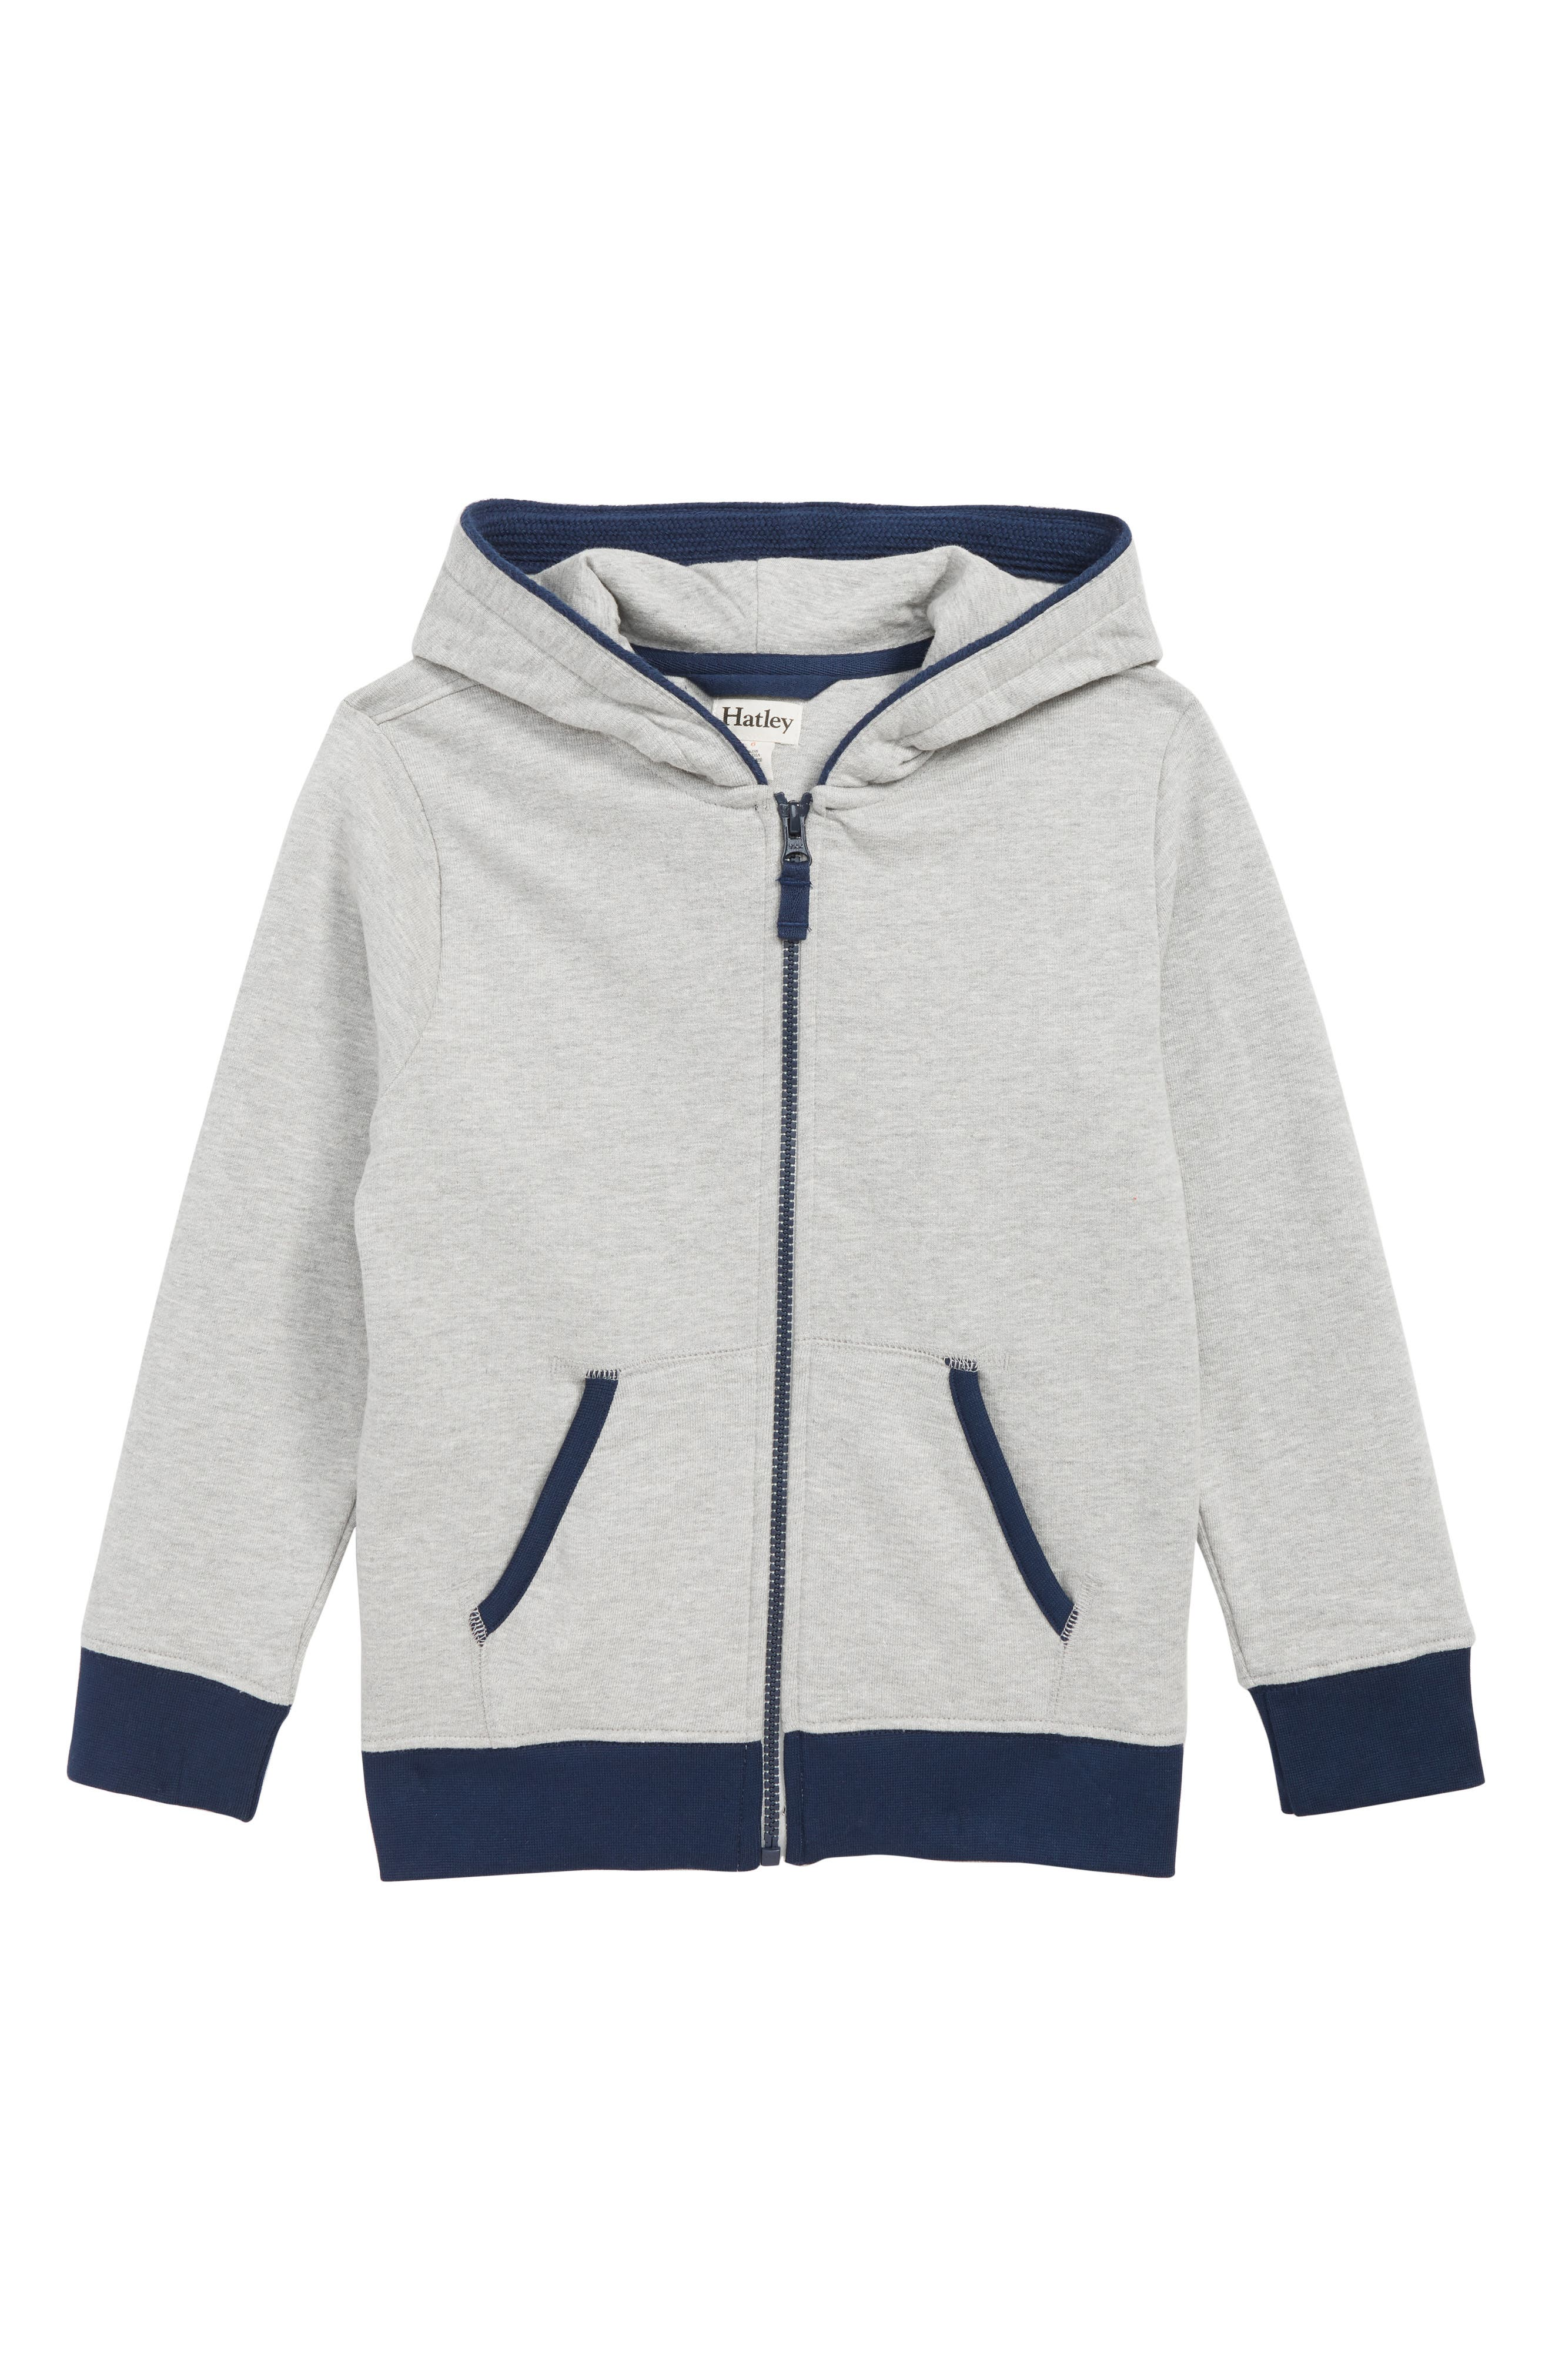 HATLEY, Full Zip Hoodie, Main thumbnail 1, color, GREY